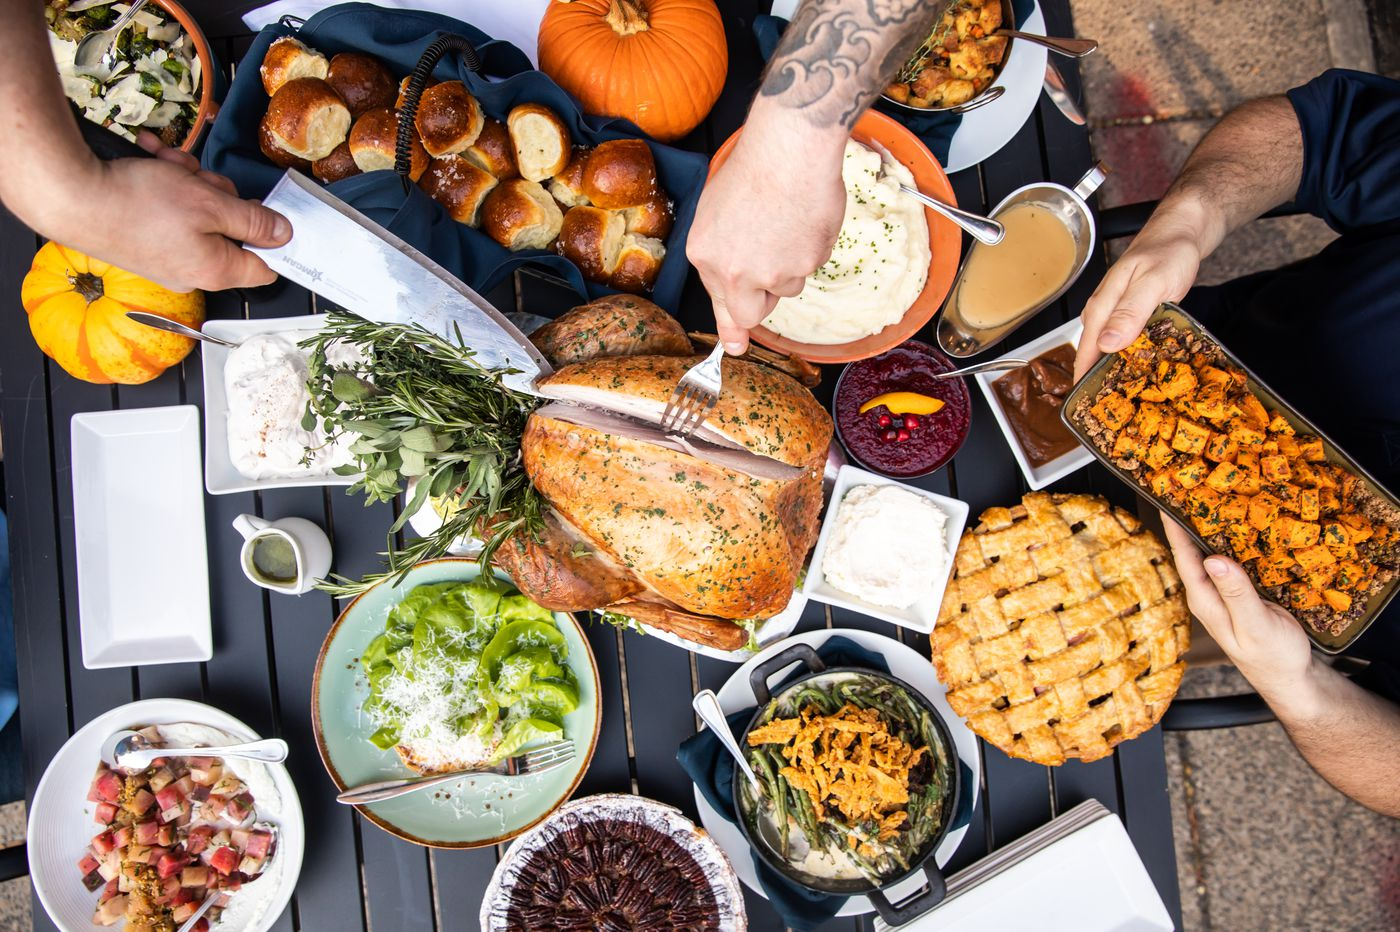 Don't want to cook Thanksgiving dinner? No problem.